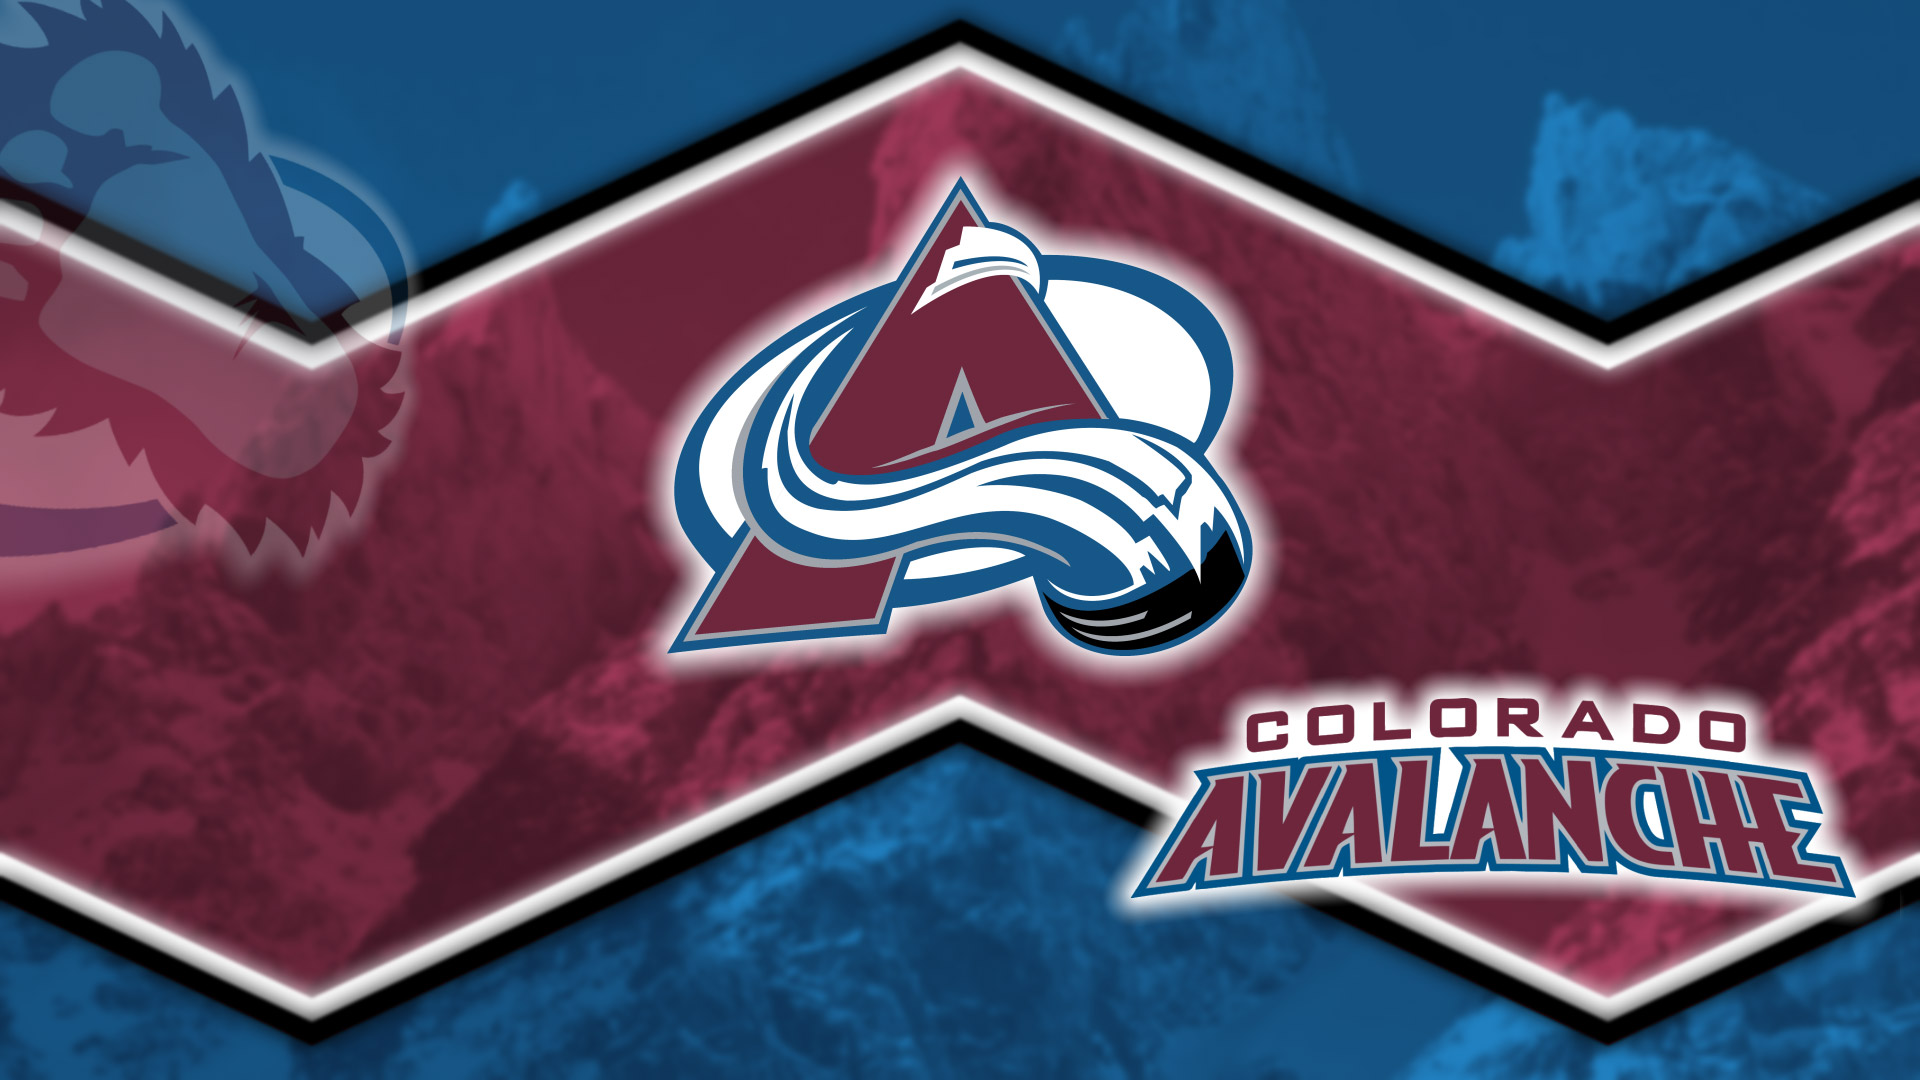 1920x1080 - Colorado Avalanche Wallpapers 25